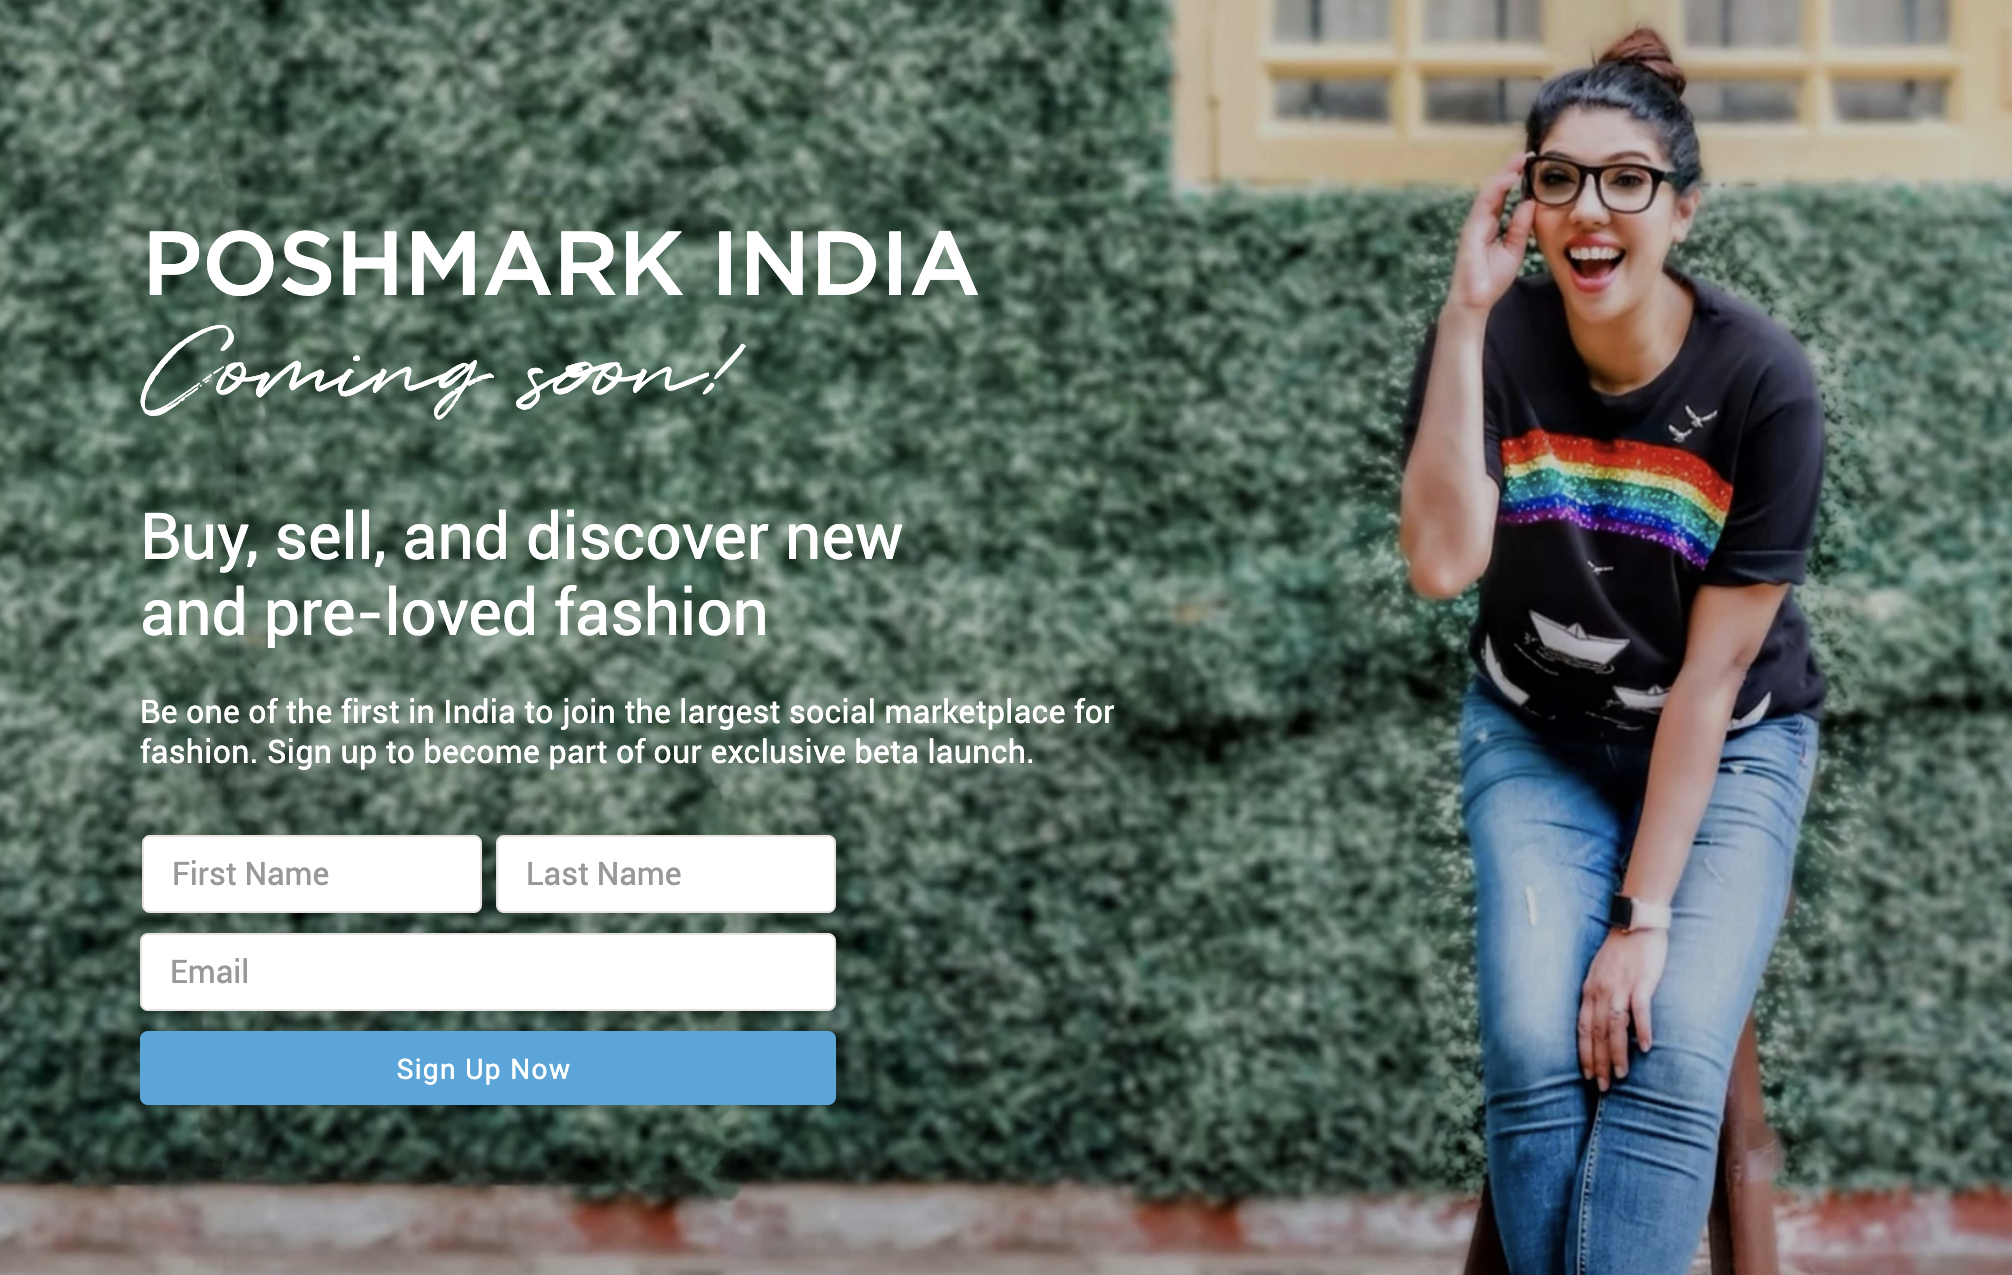 Poshmark is opening its peer-to-peer fashion shopping experience to its biggest potential audience yet, expanding its platform to India.